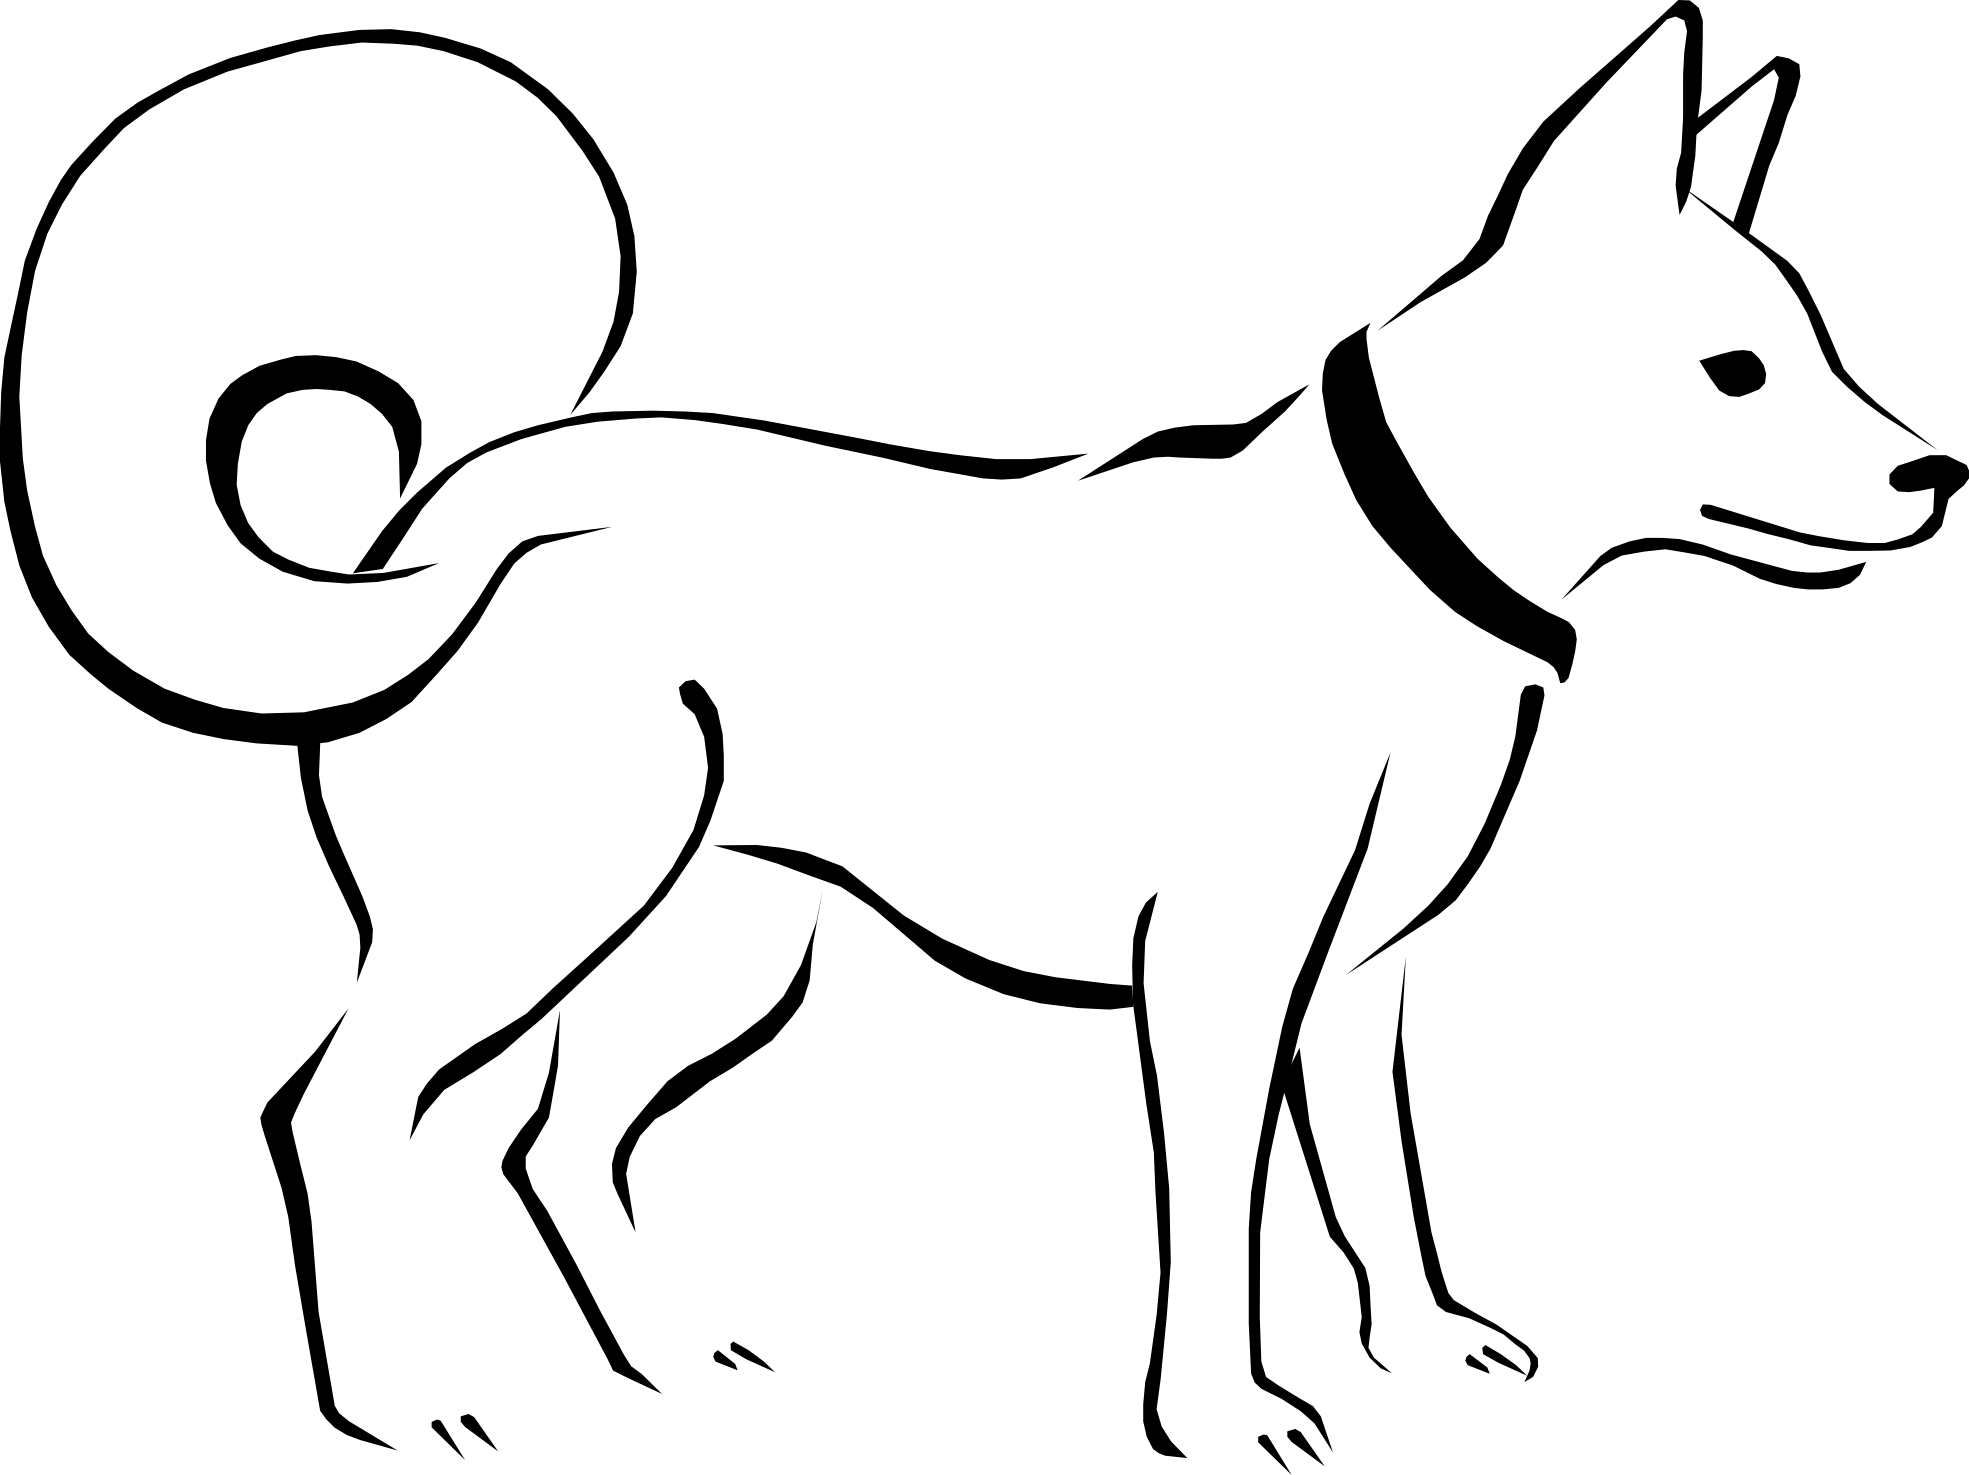 jpg freeuse stock Cool of letters format. Dog clipart black and white.